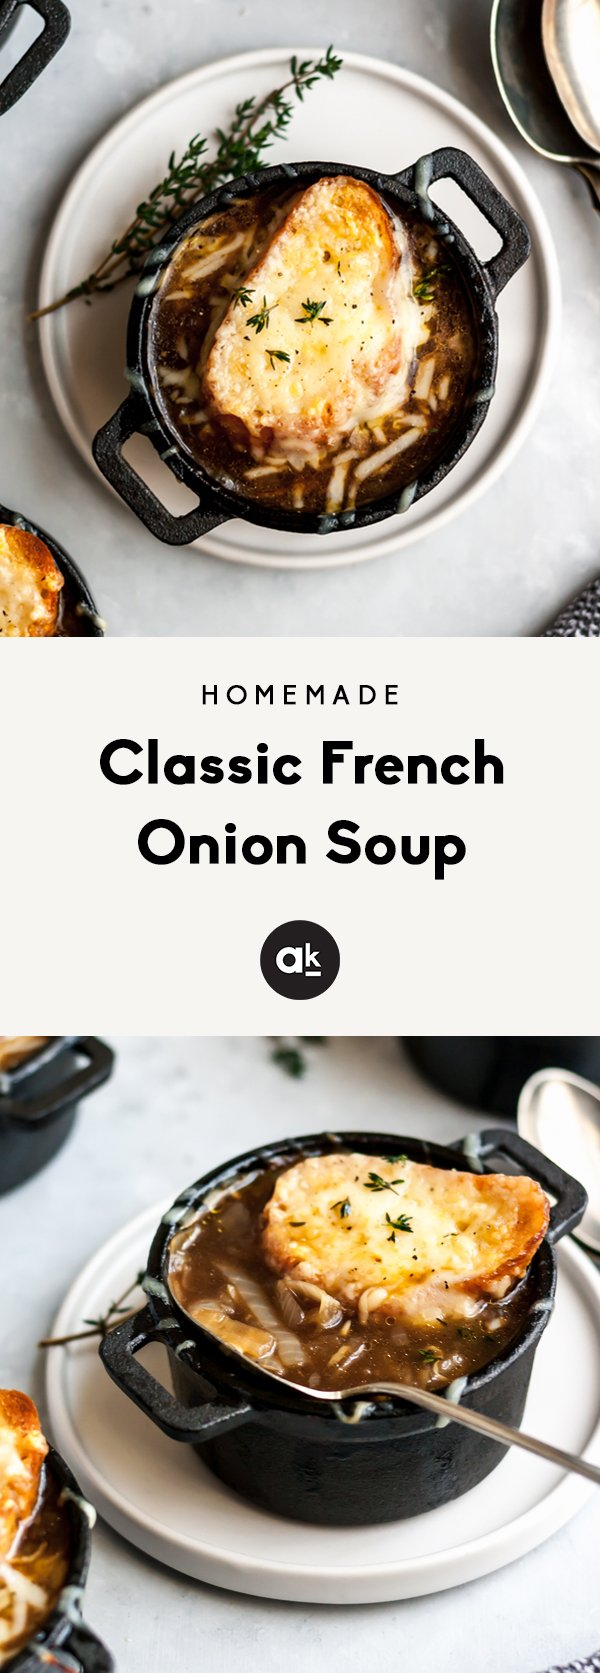 An incredible, classic french onion soup made with delicious caramelized onions, fresh herbs, a flavorful broth. Topped with gruyere cheese and a toasted slice of garlic french bread. You'll make this one again and again!